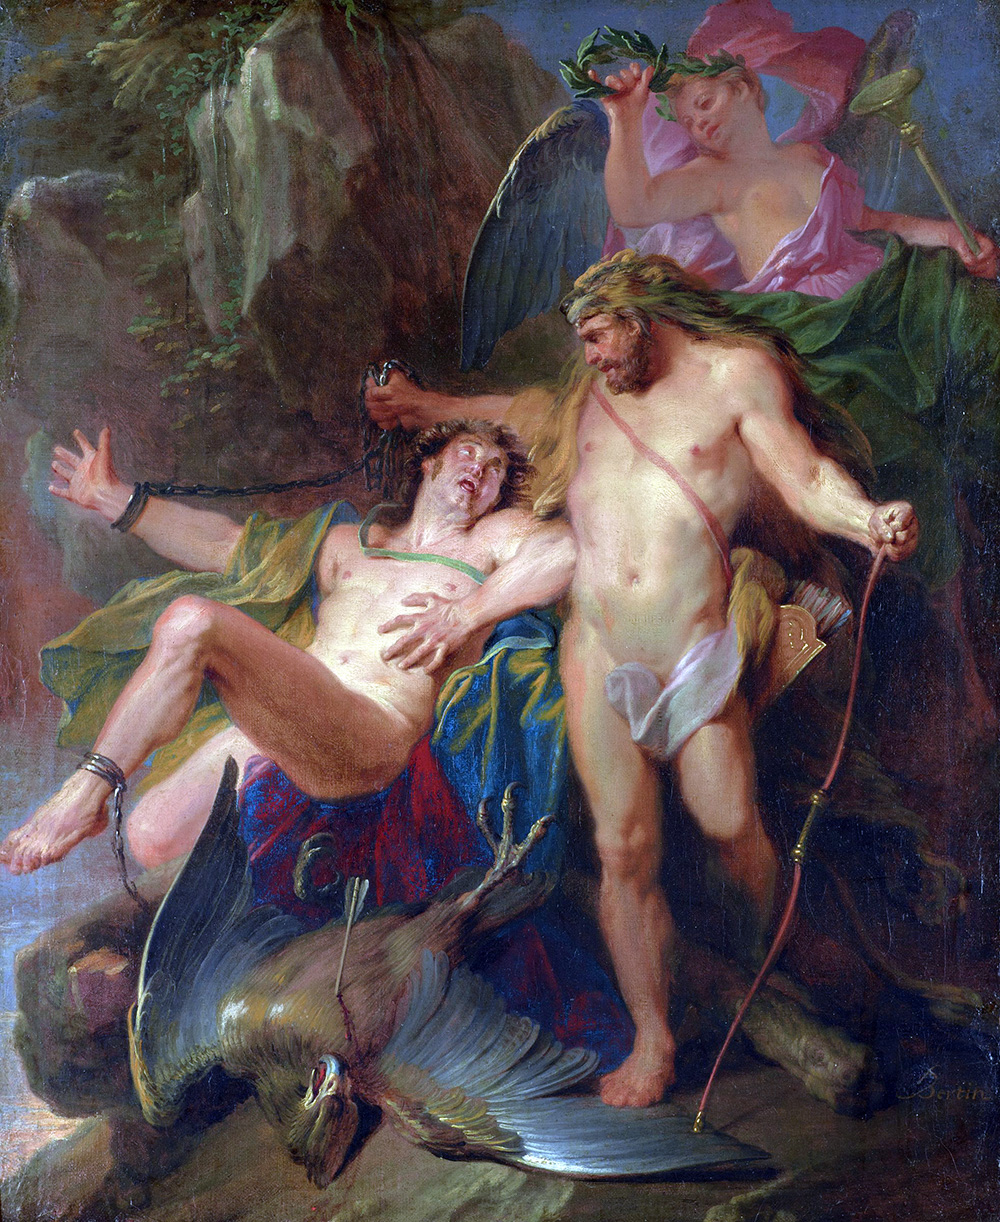 Hercules liberating the chained Prometheus